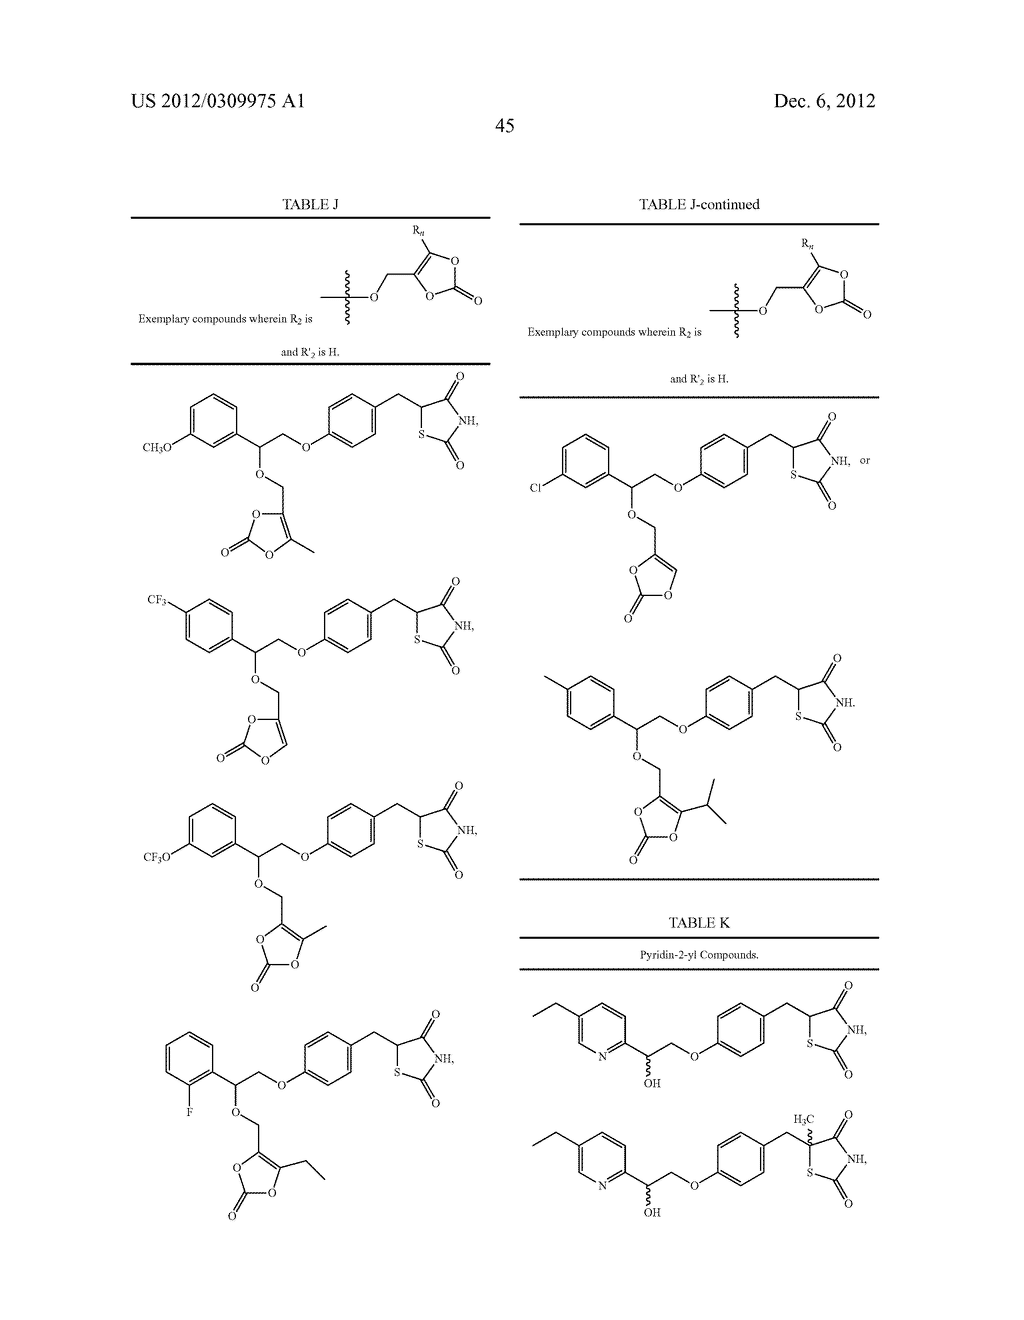 PPAR-SPARING THIAZOLIDINEDIONE SALTS FOR THE TREATMENT OF METABOLIC     DISEASES - diagram, schematic, and image 60